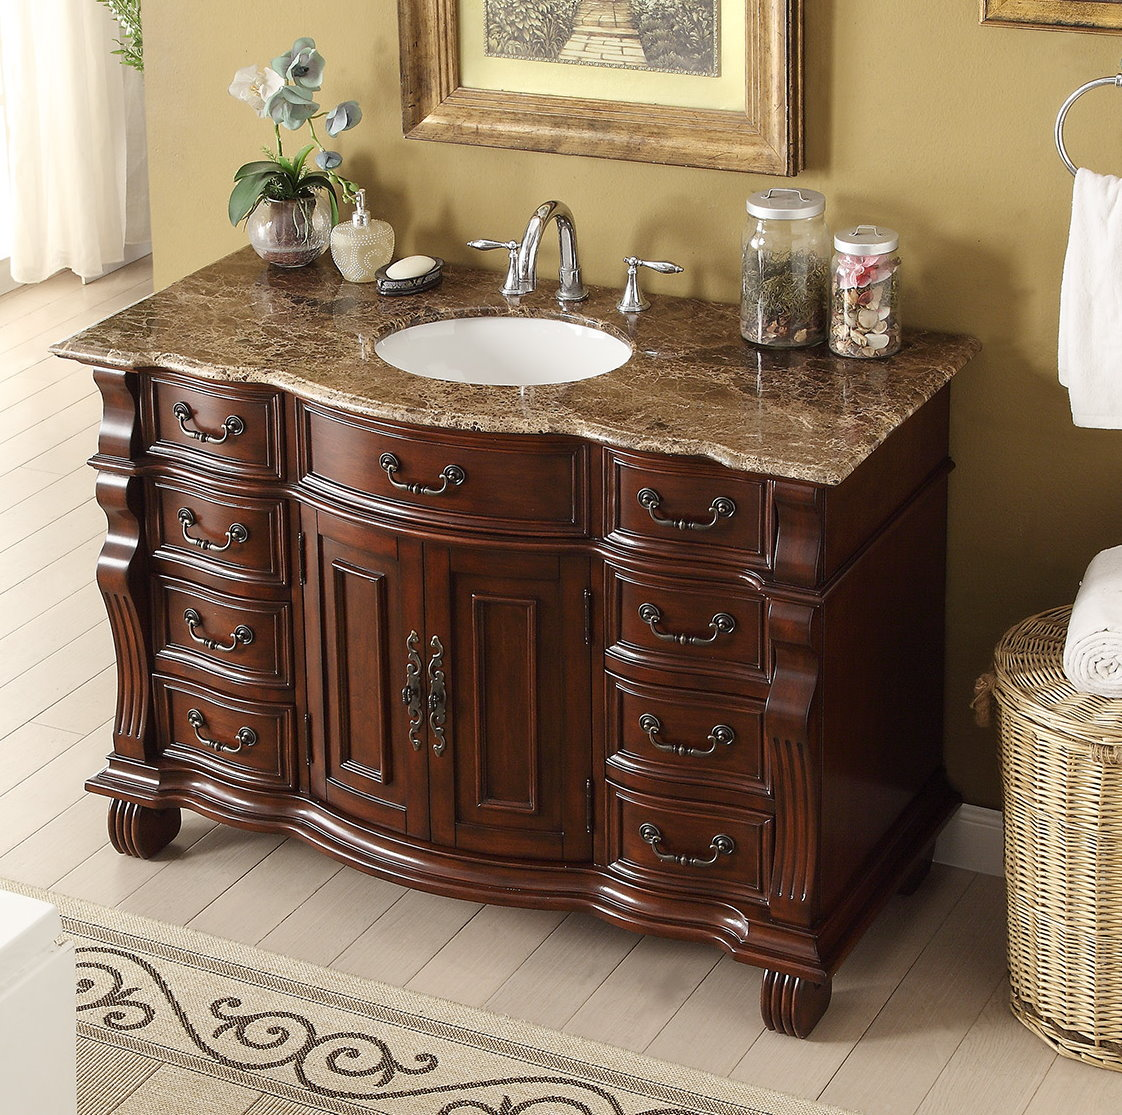 - Adelina 60 Inch Antique Style Bathroom Vanity Brown Marble Countertop